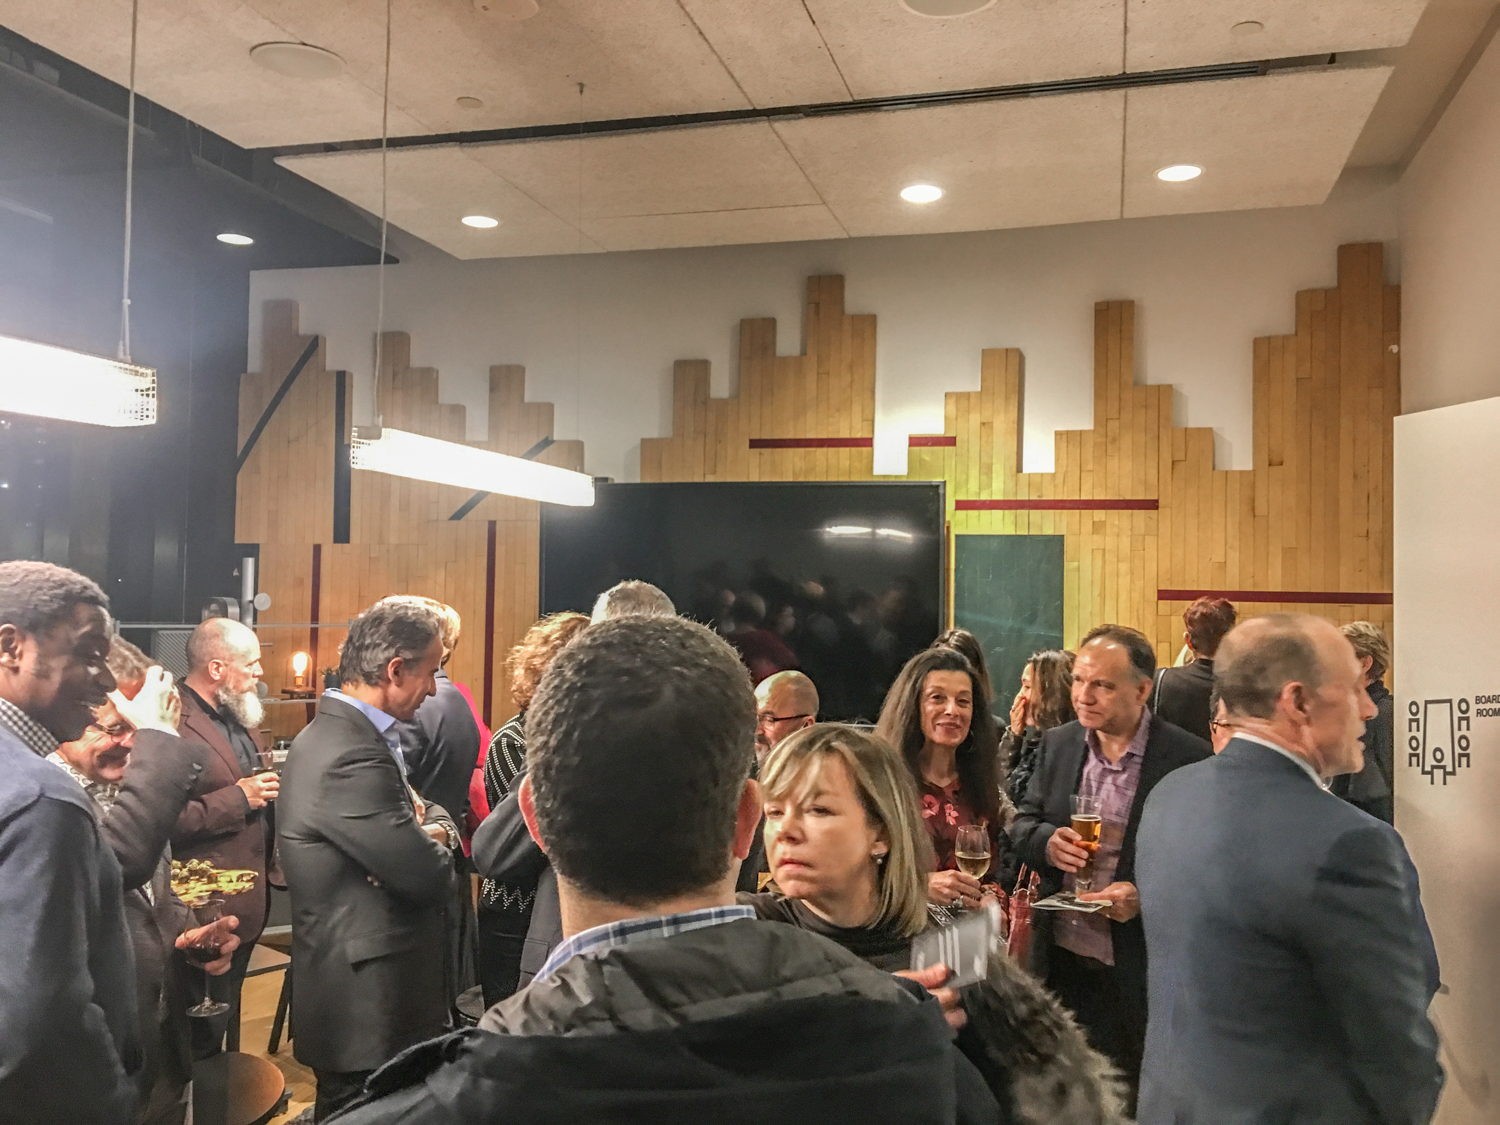 a crowd mingles in a boardroom that has repurposed gym flooring used as a wallcovering